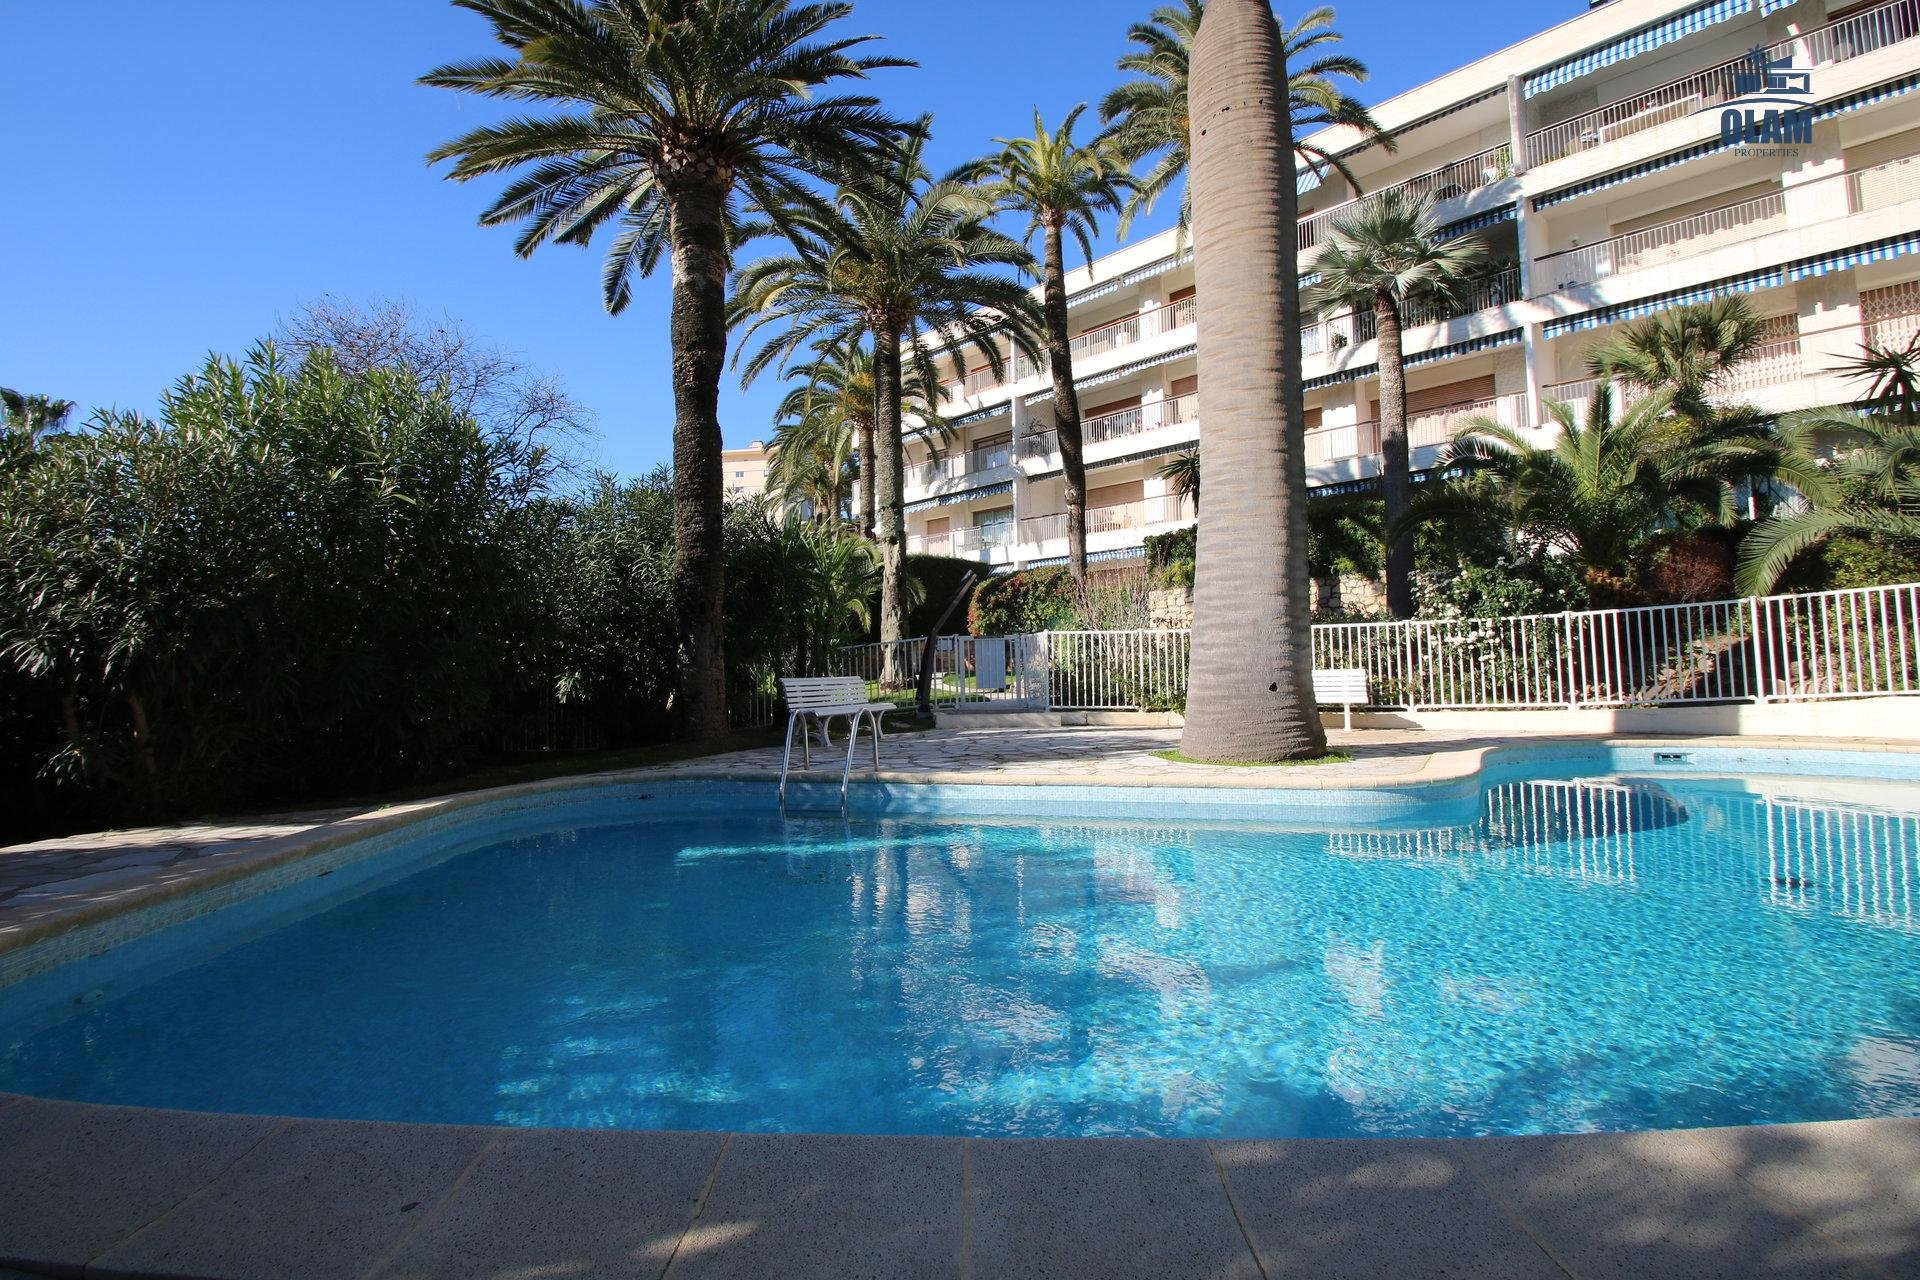 pool, wooded park, Cannes, Palais des Festivals, French Riviera